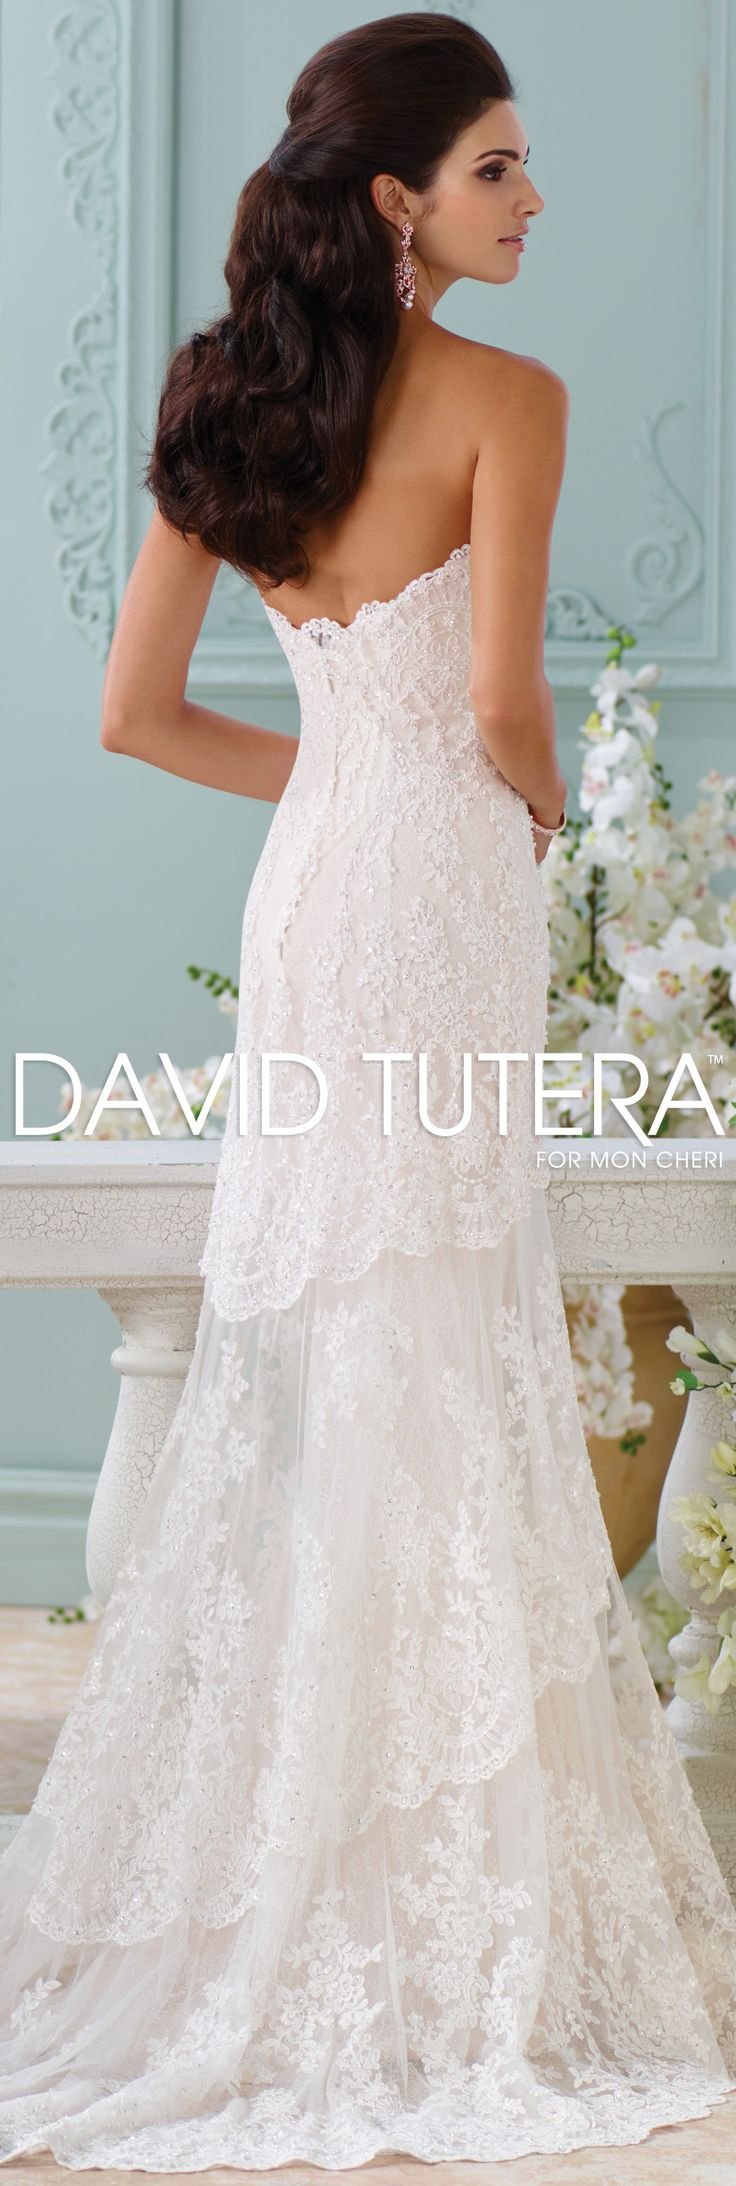 115 best images about david tutera wedding dresses on for David tutera beach wedding dresses